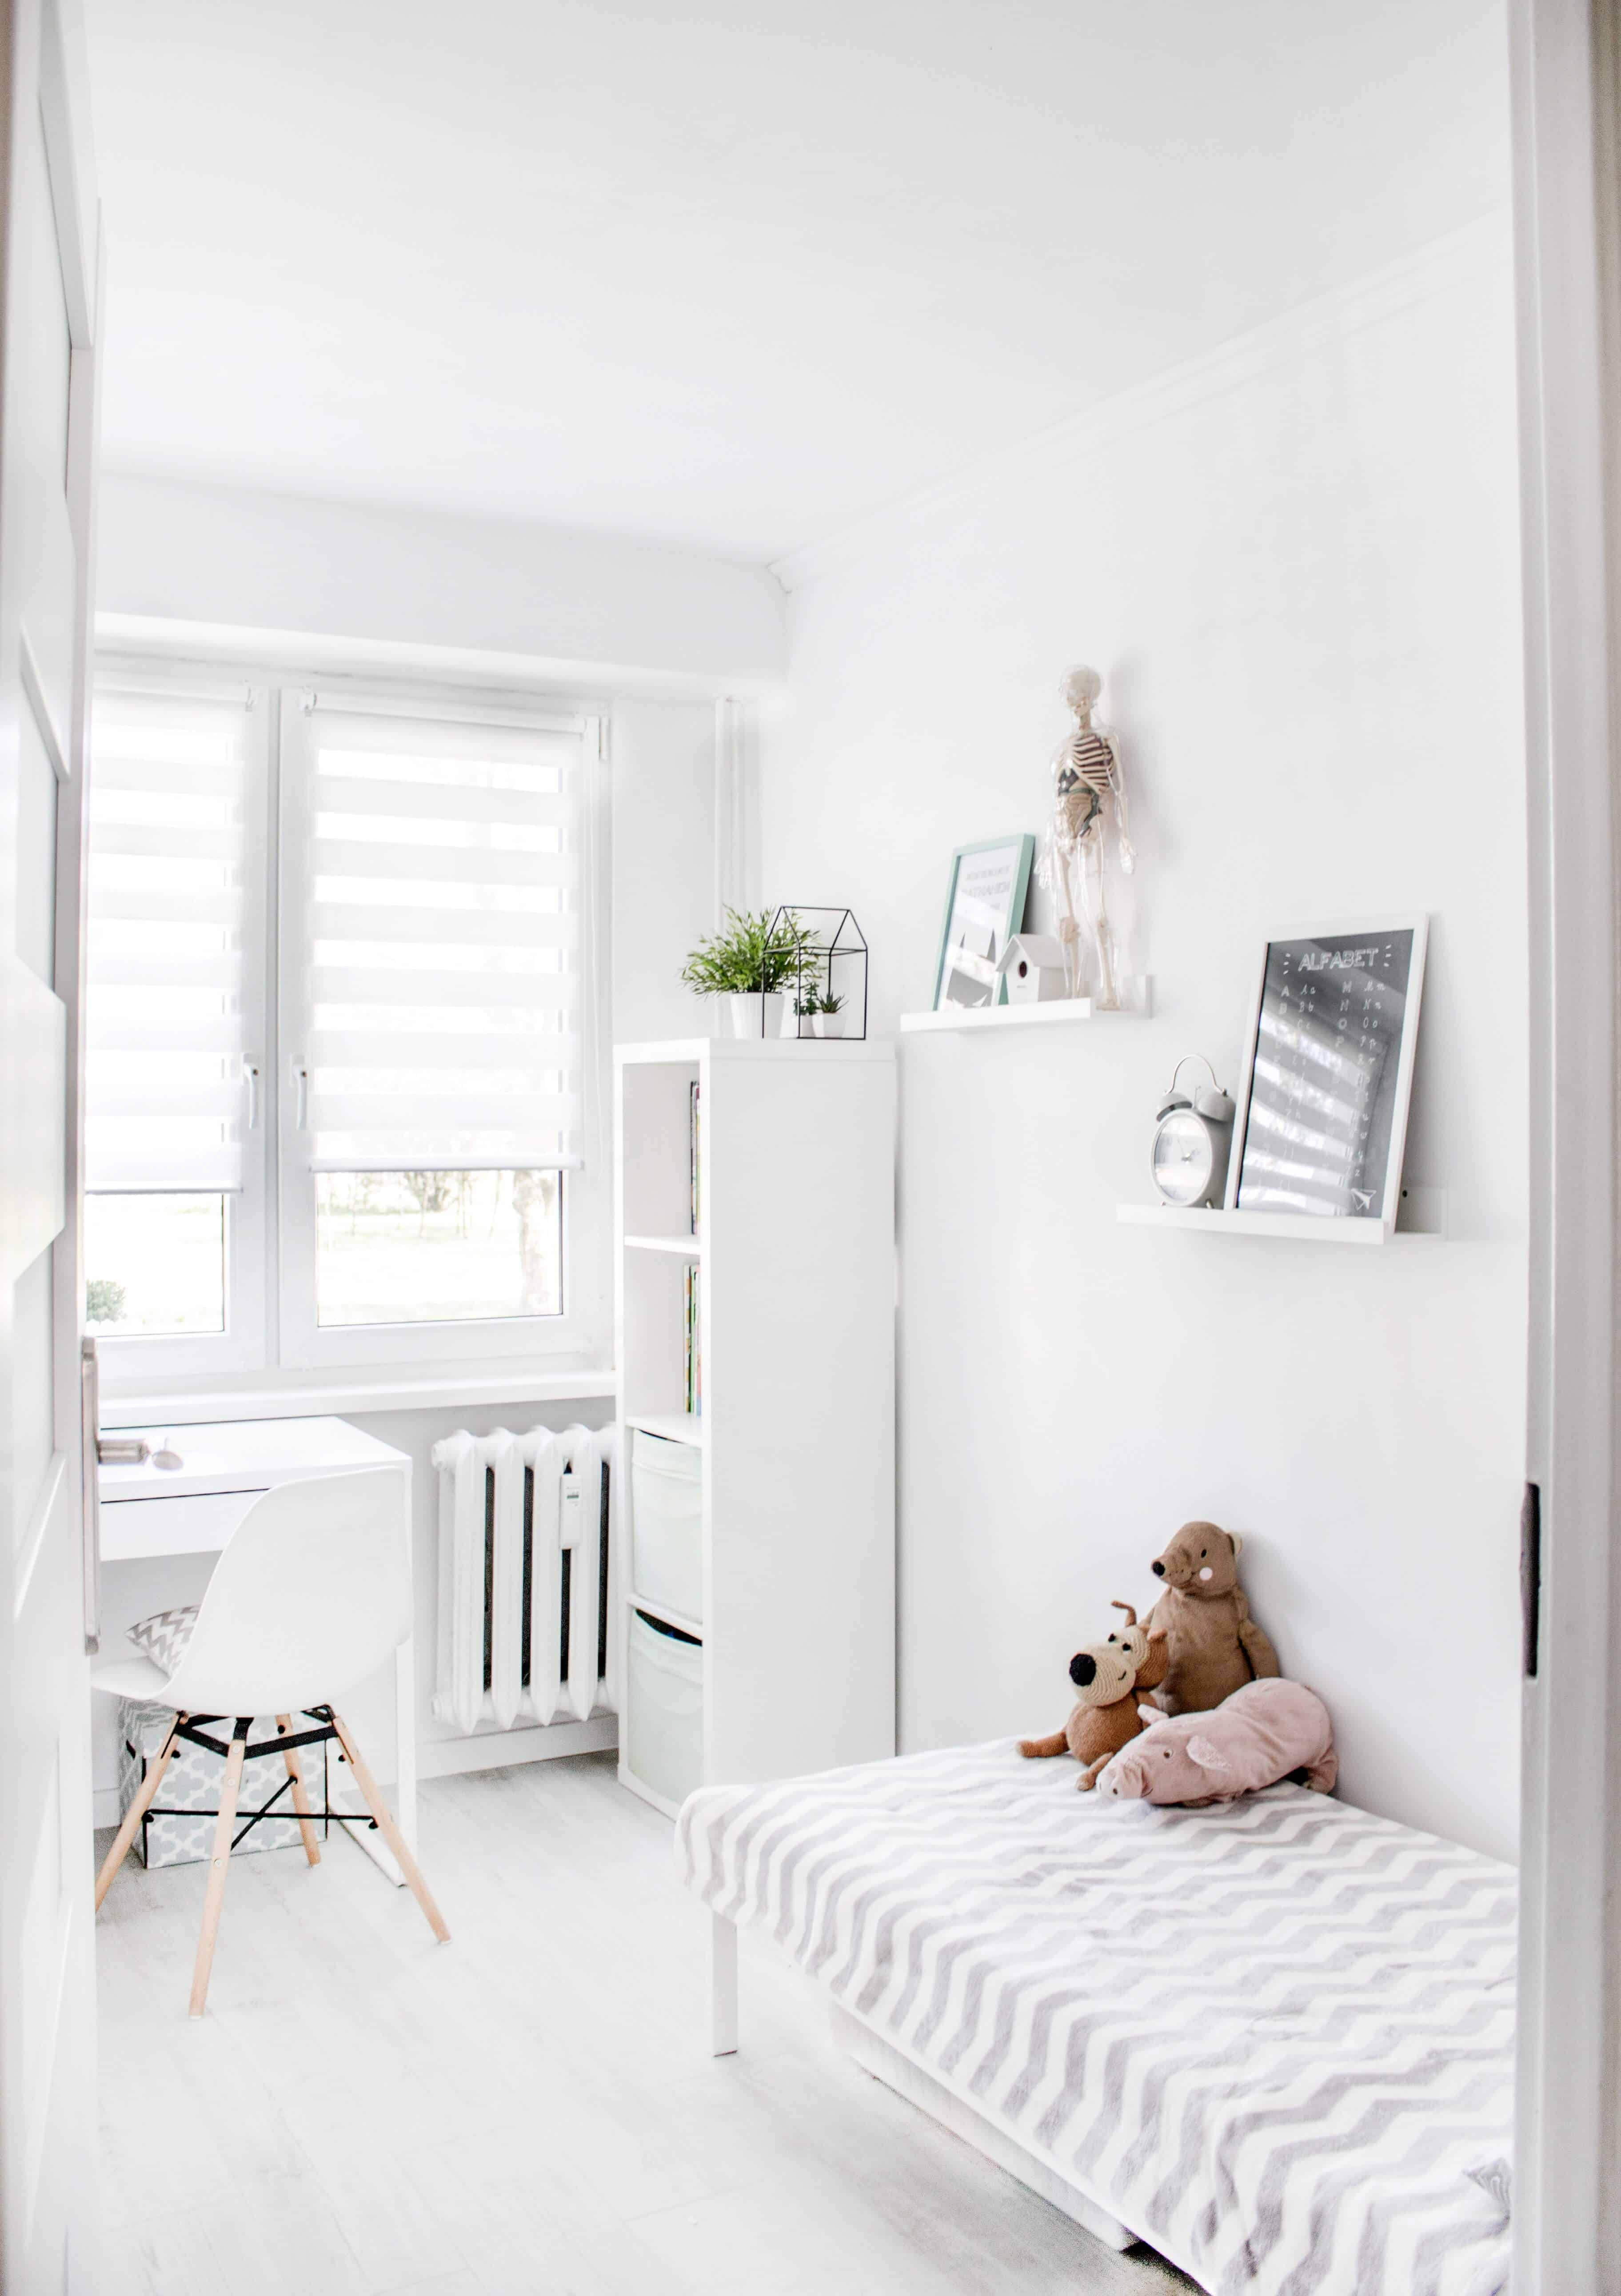 A very clean minimalist child's room, in all white.